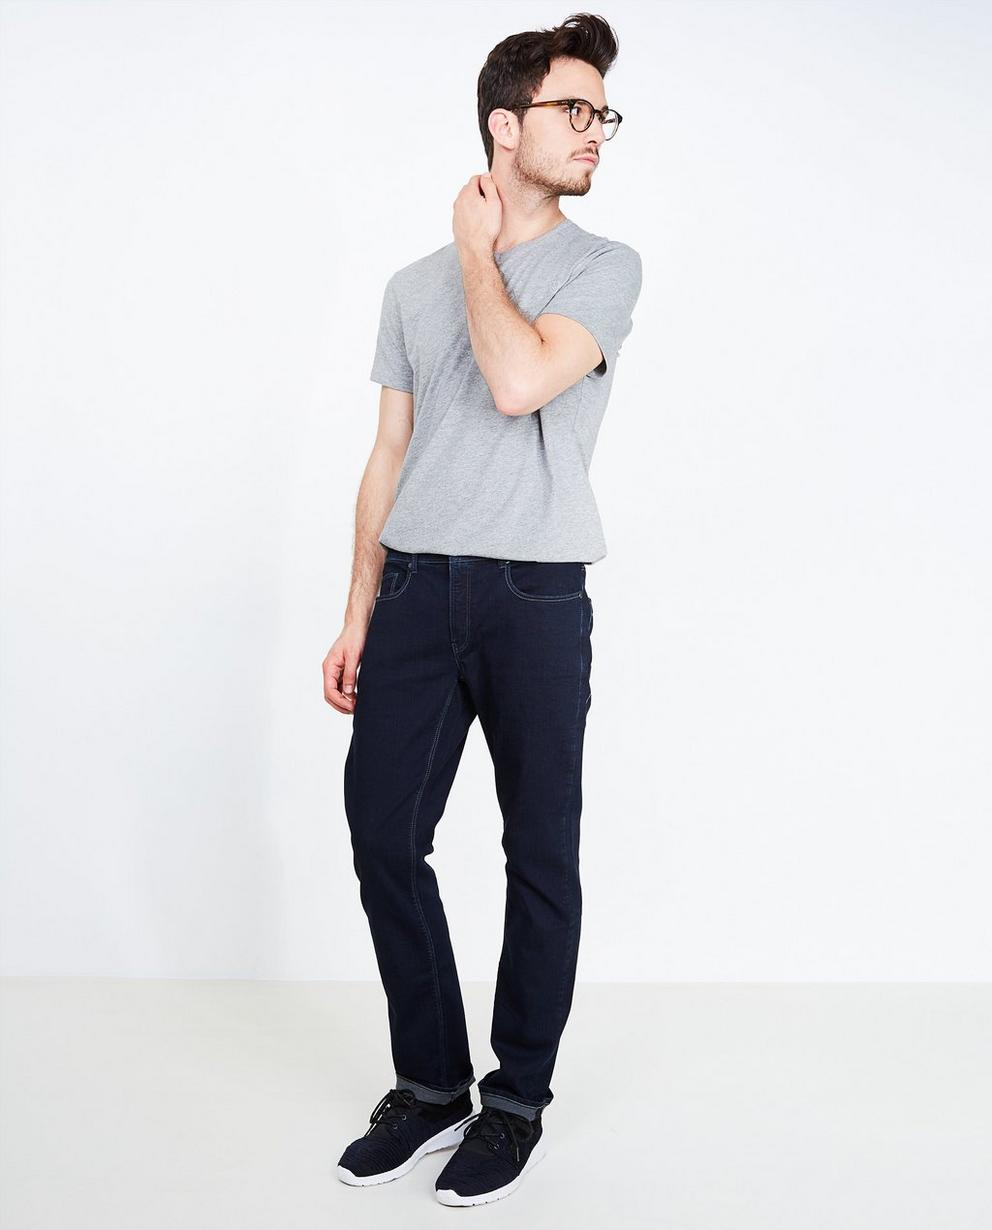 Jeans bleu foncé - fitted straight - Tim Moore